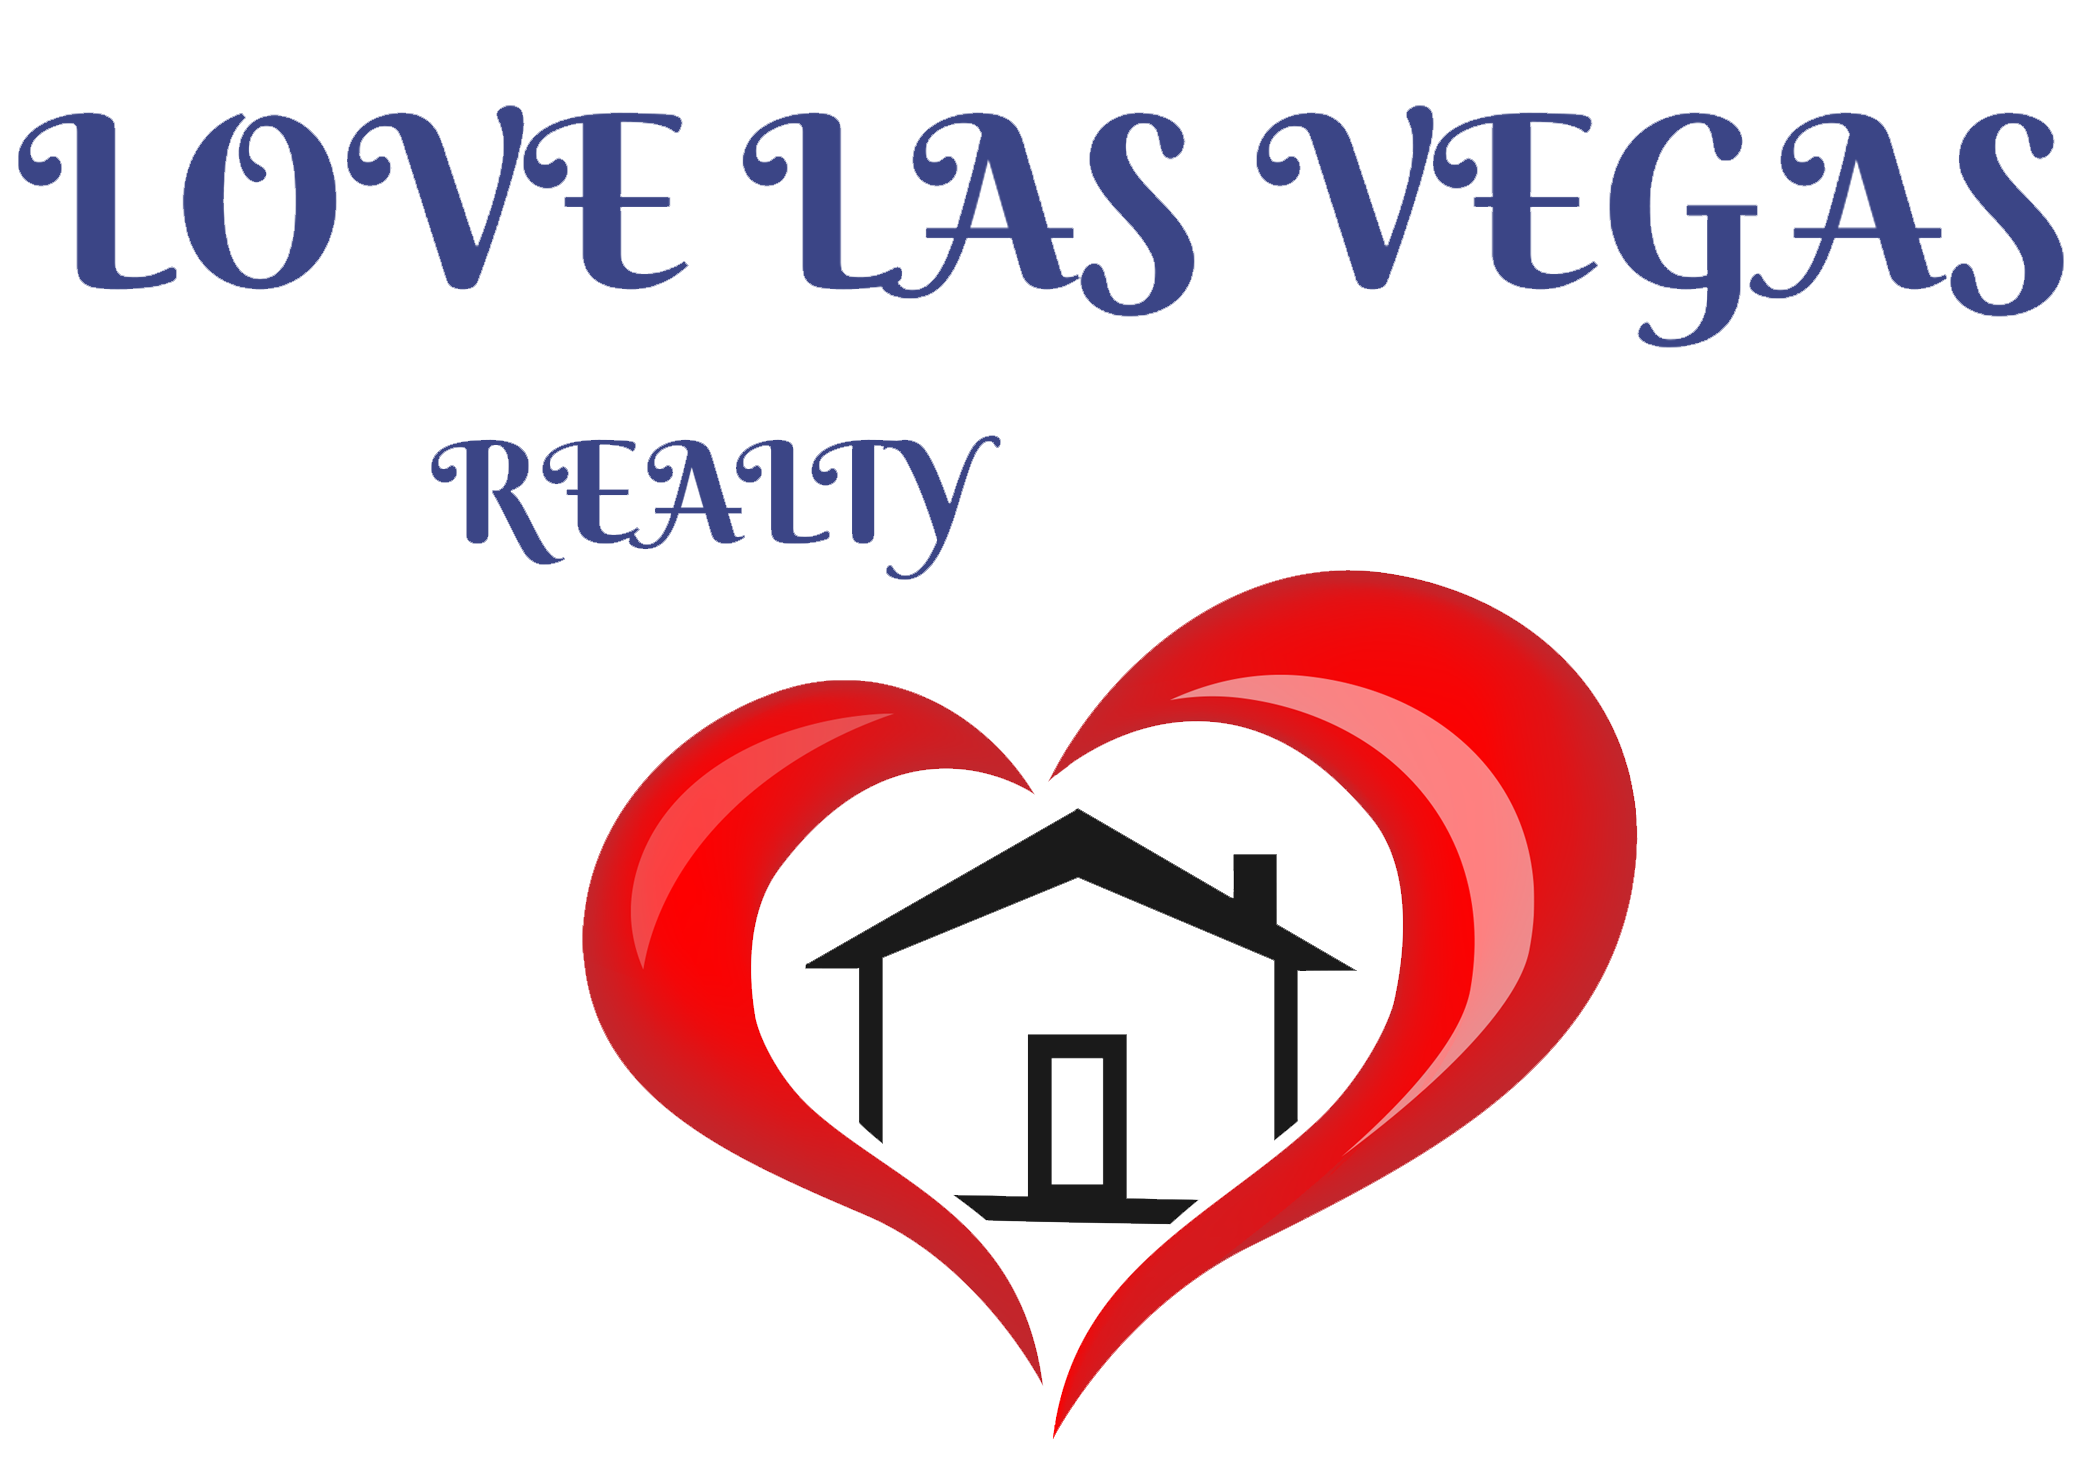 Love las vegas realty